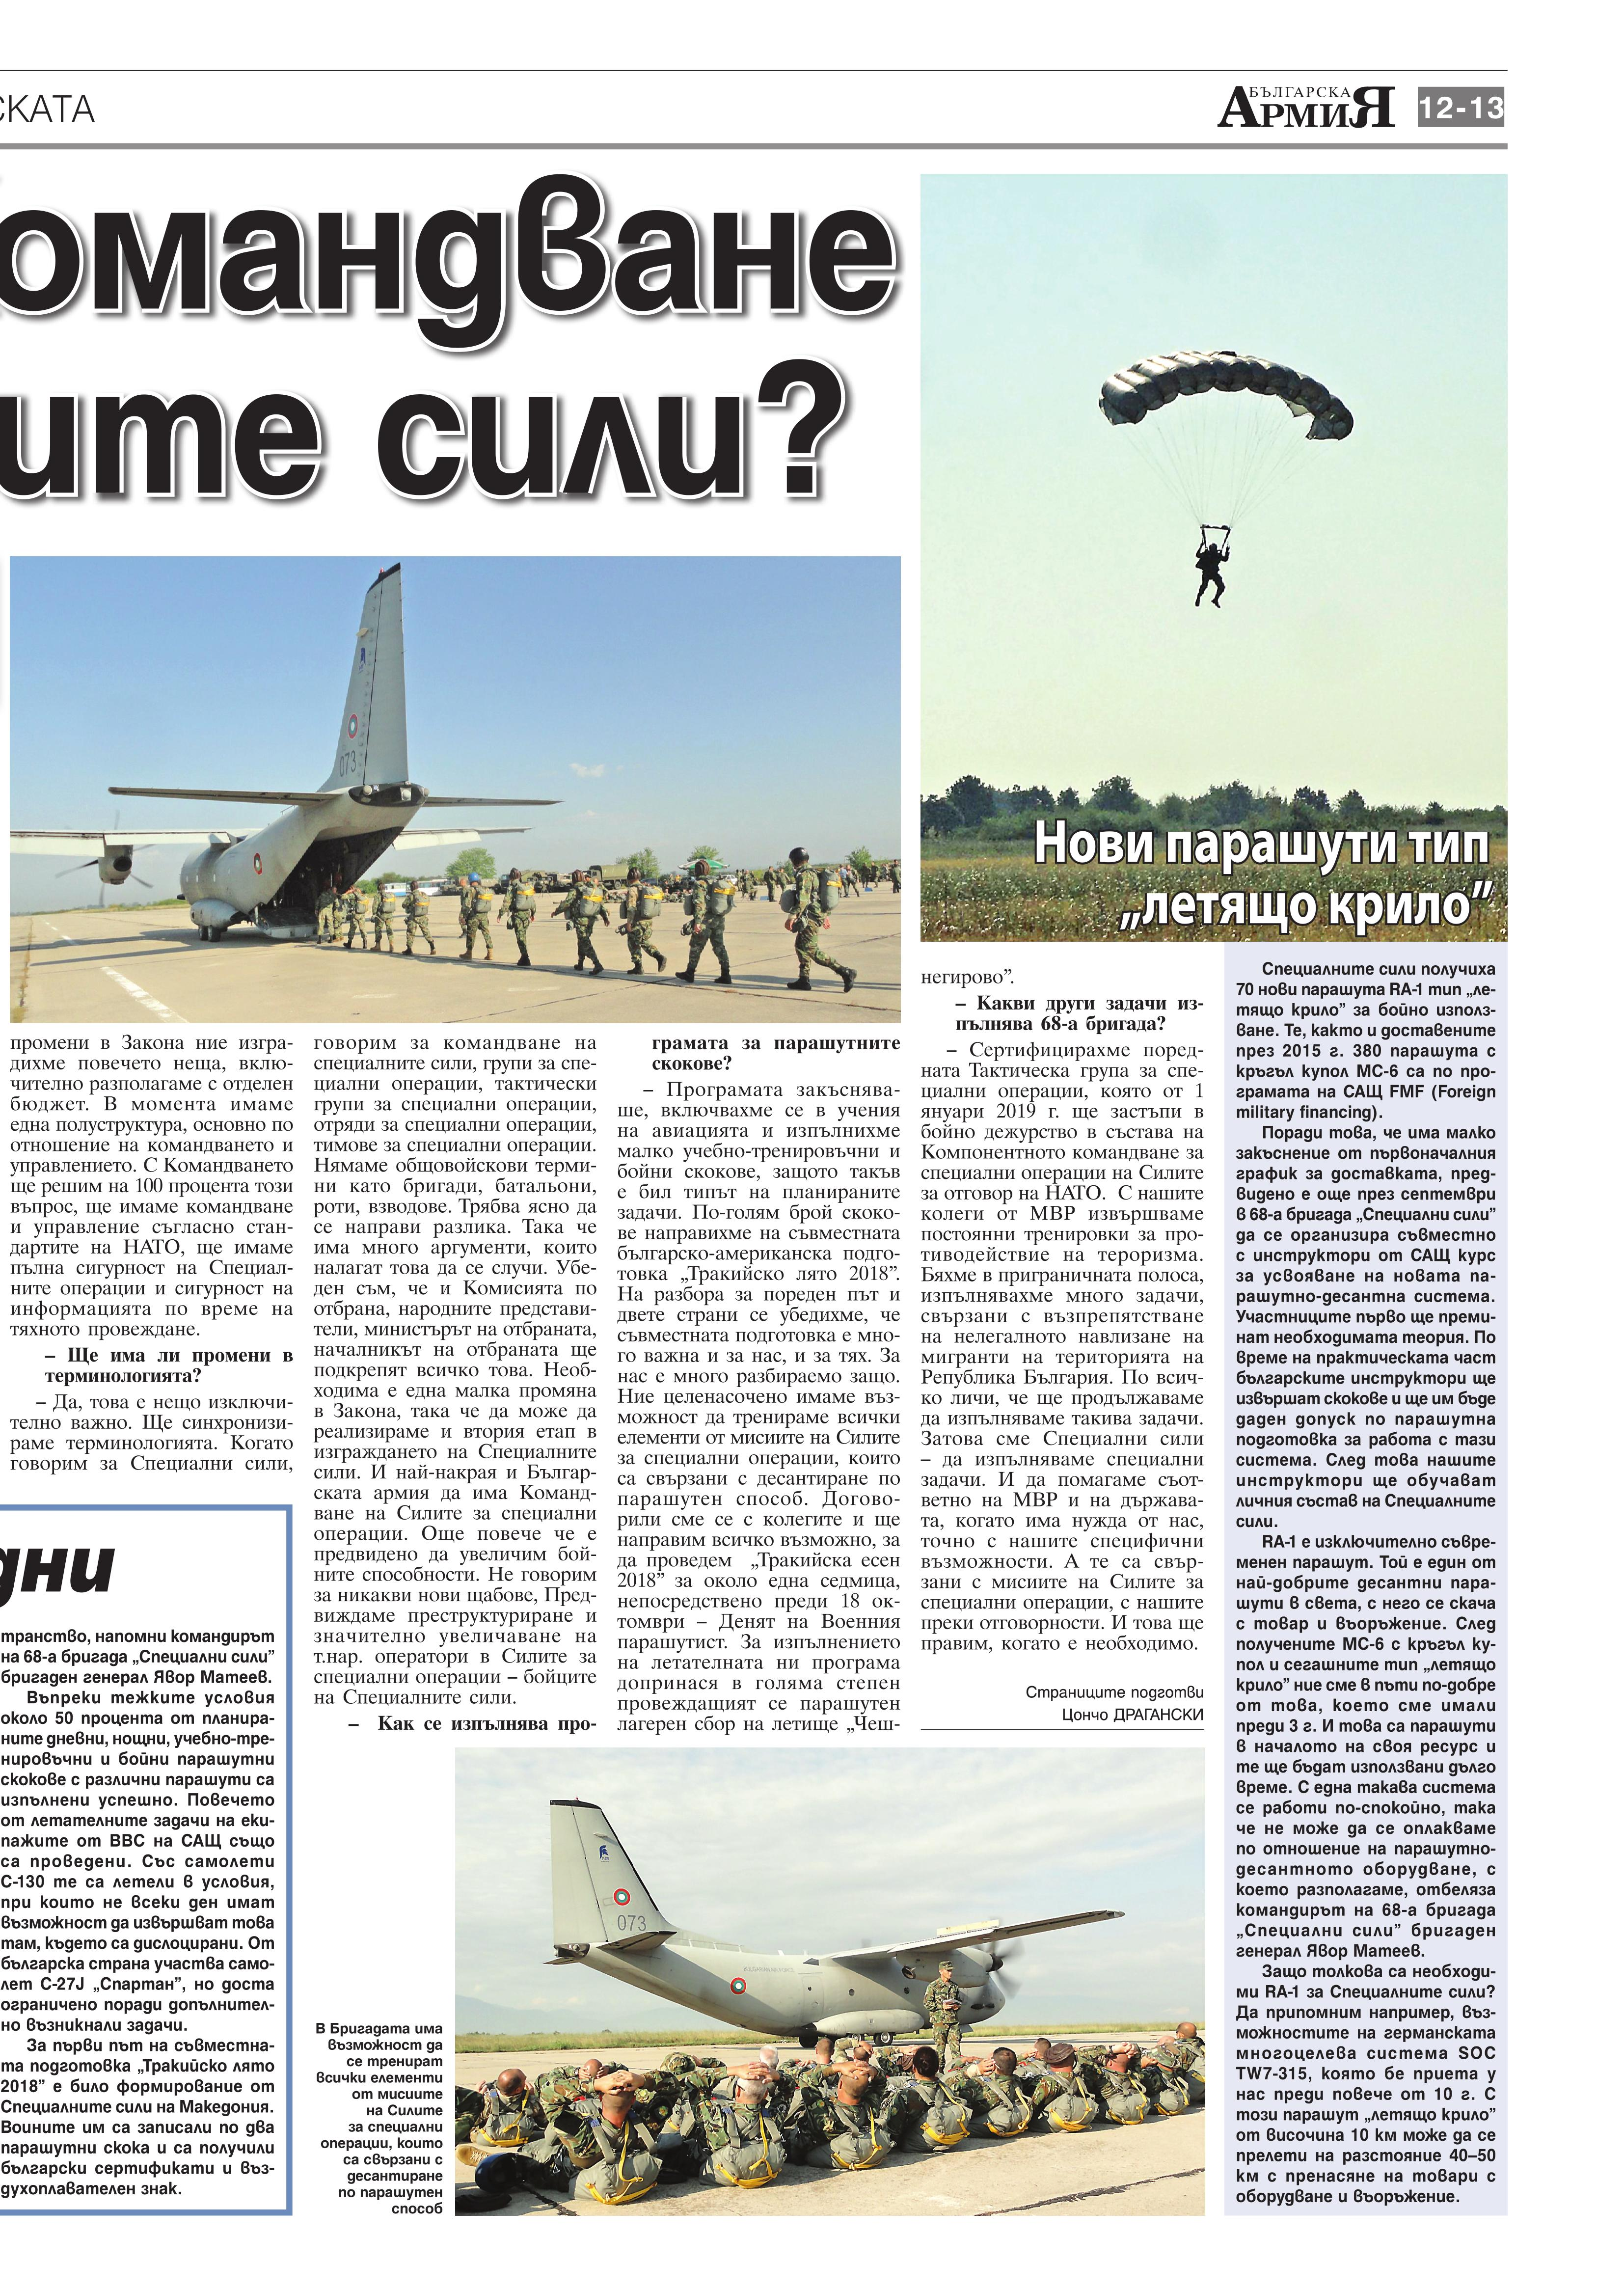 https://armymedia.bg/wp-content/uploads/2015/06/13.page1_-61.jpg